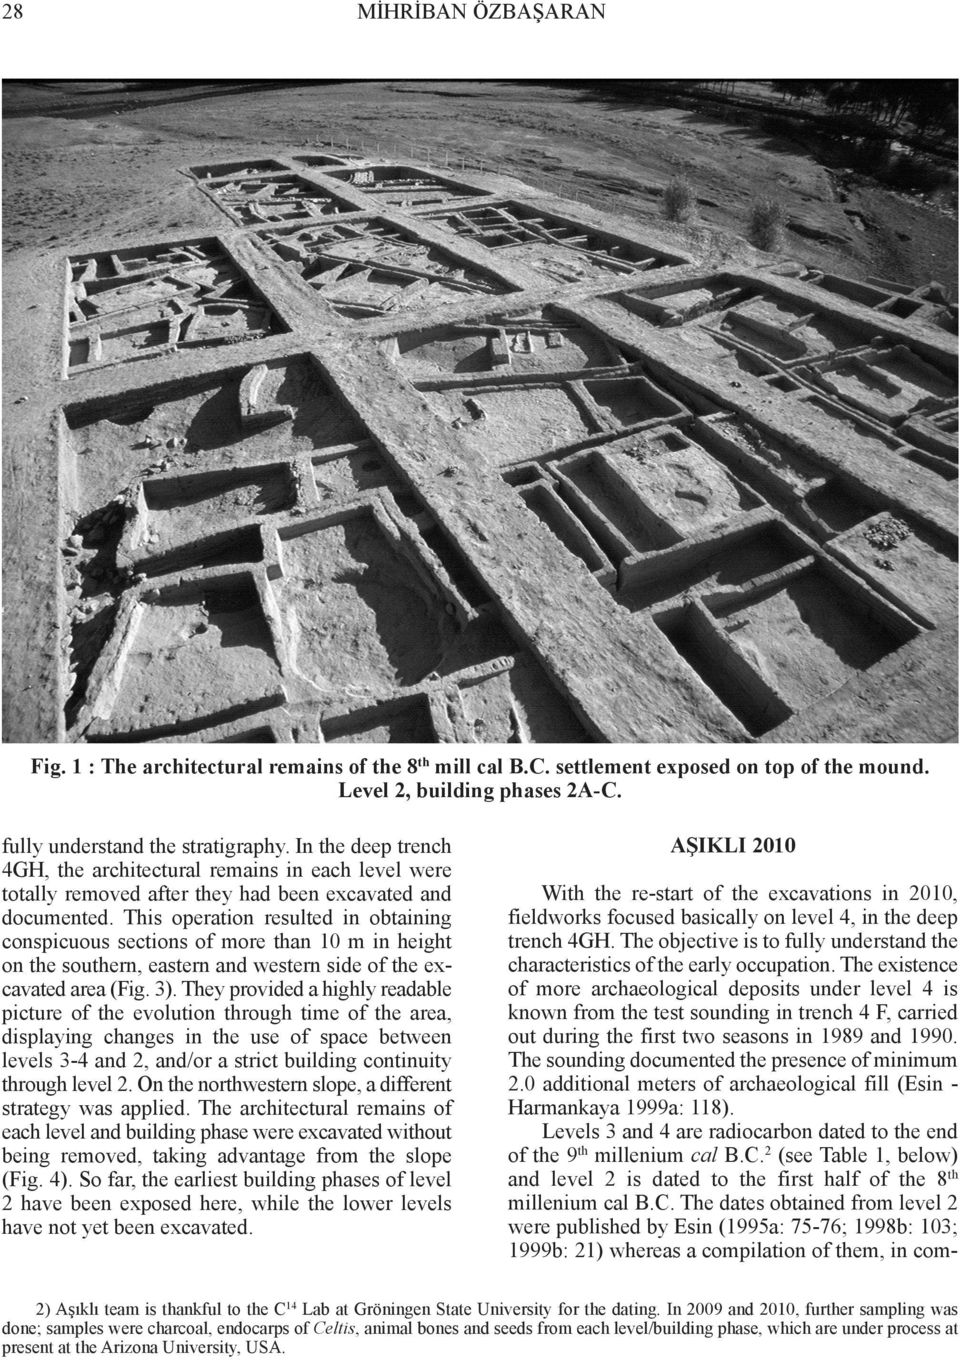 This operation resulted in obtaining conspicuous sections of more than 10 m in height on the southern, eastern and western side of the excavated area (Fig. 3).